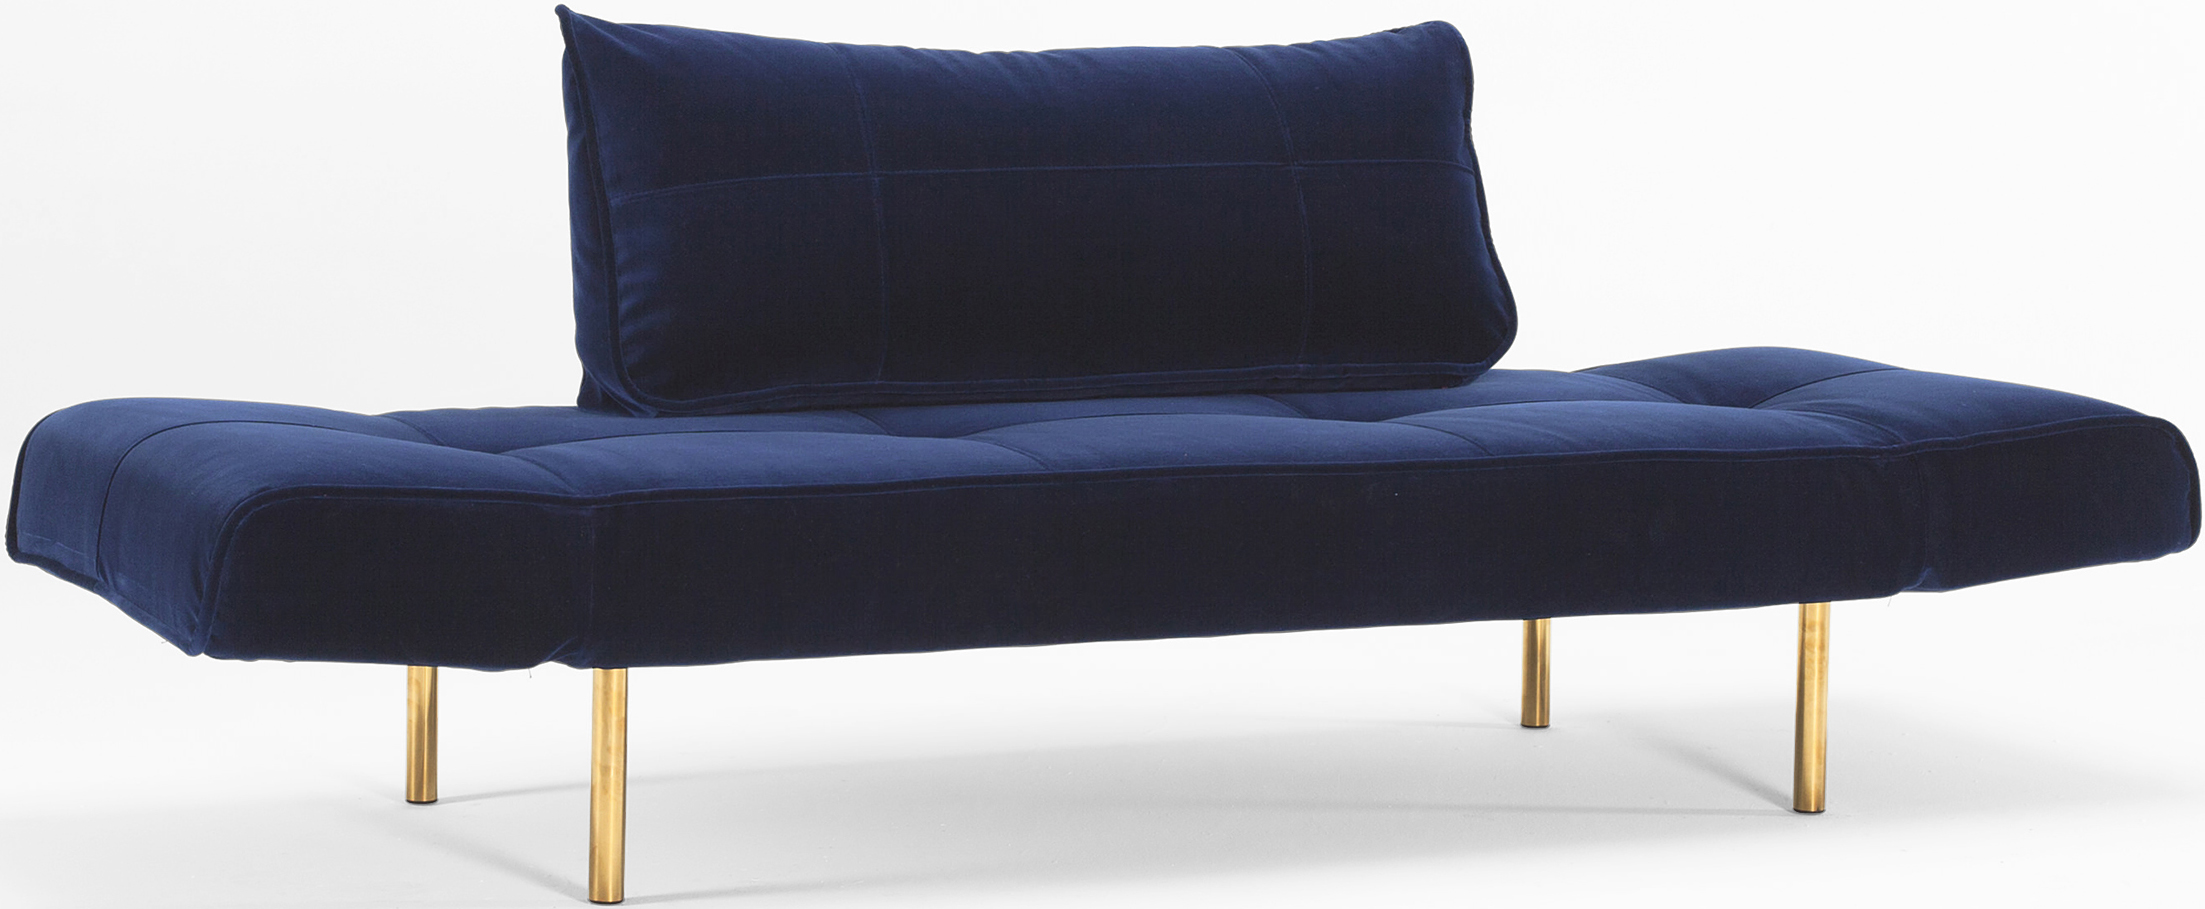 innovation velvet blue daybed